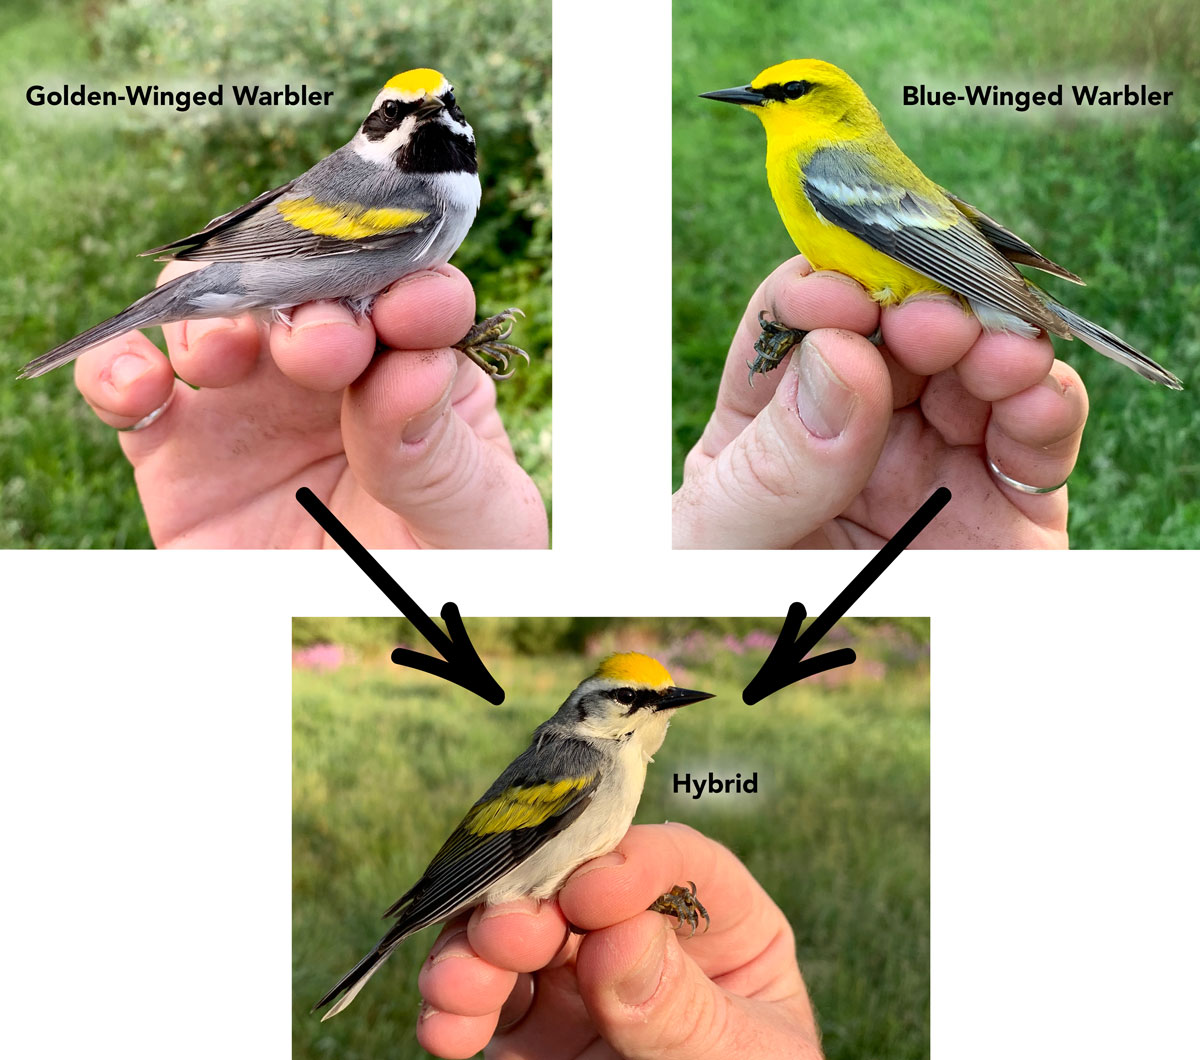 Golden winged and blue winged warblers and a hybrid